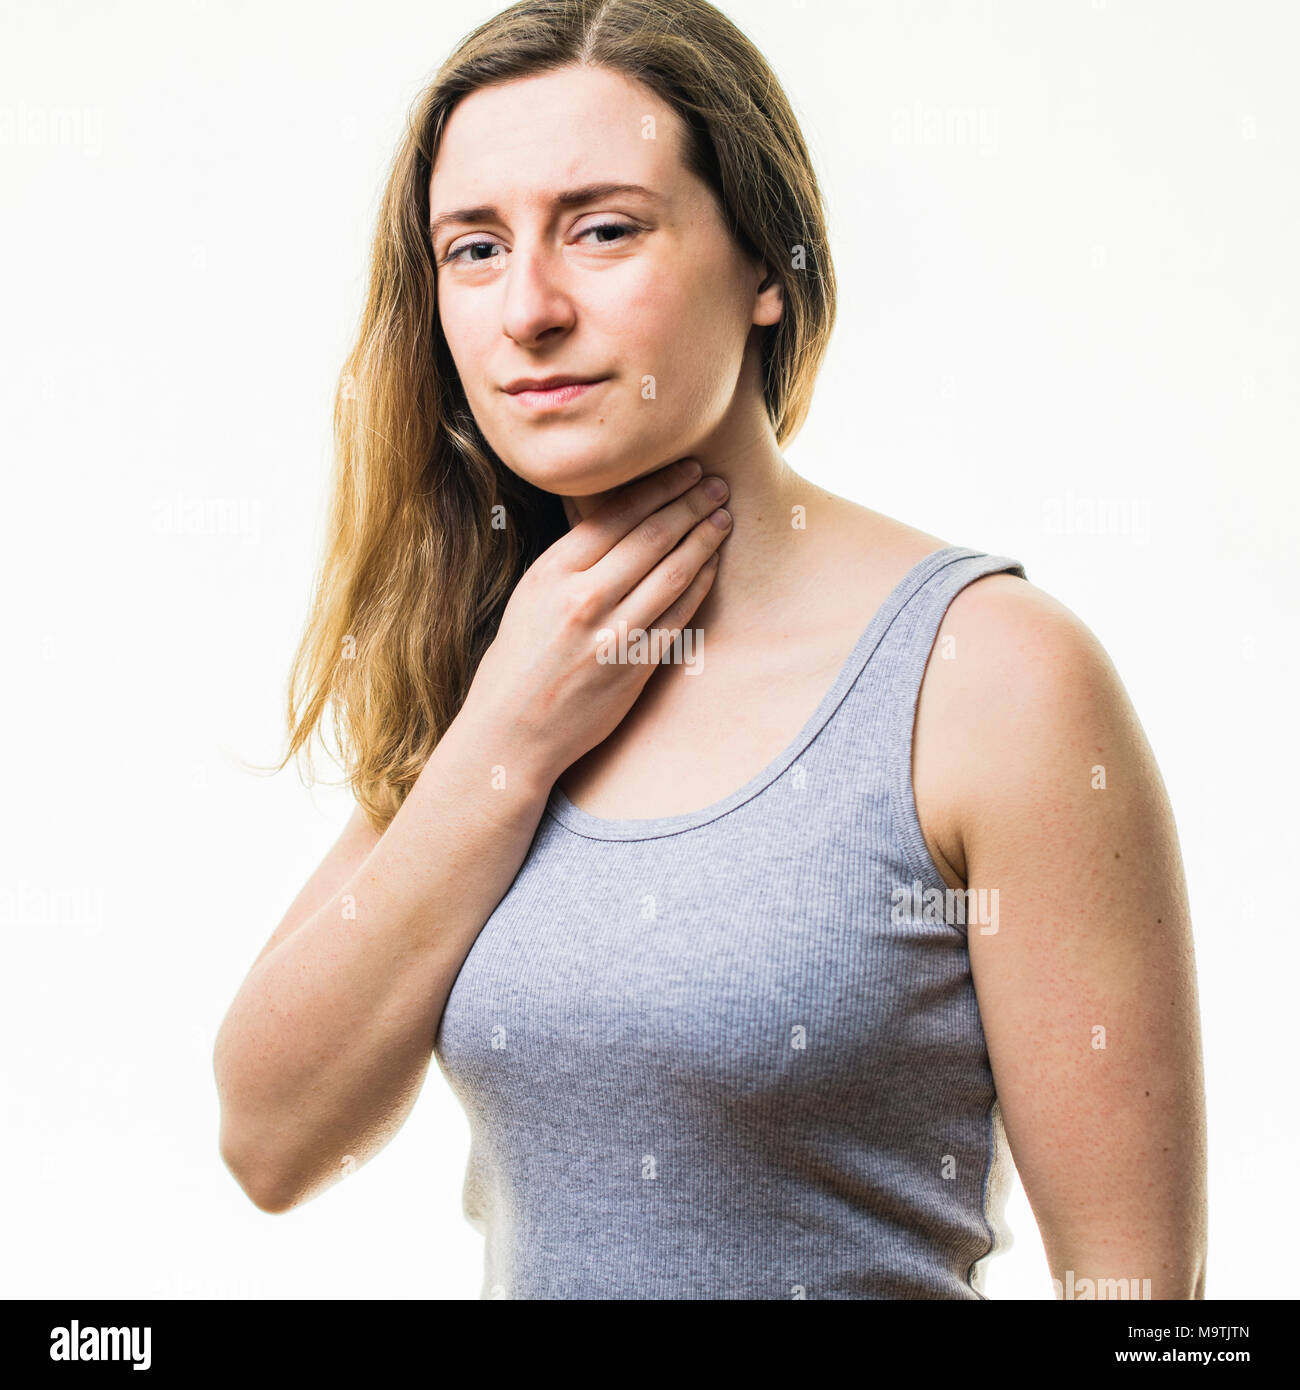 A young Caucasian woman girl wearing a grey vest,  suffering from a sore throat or neck pain, rubbing her skin for relief,  standing against a white background, UK - Stock Image